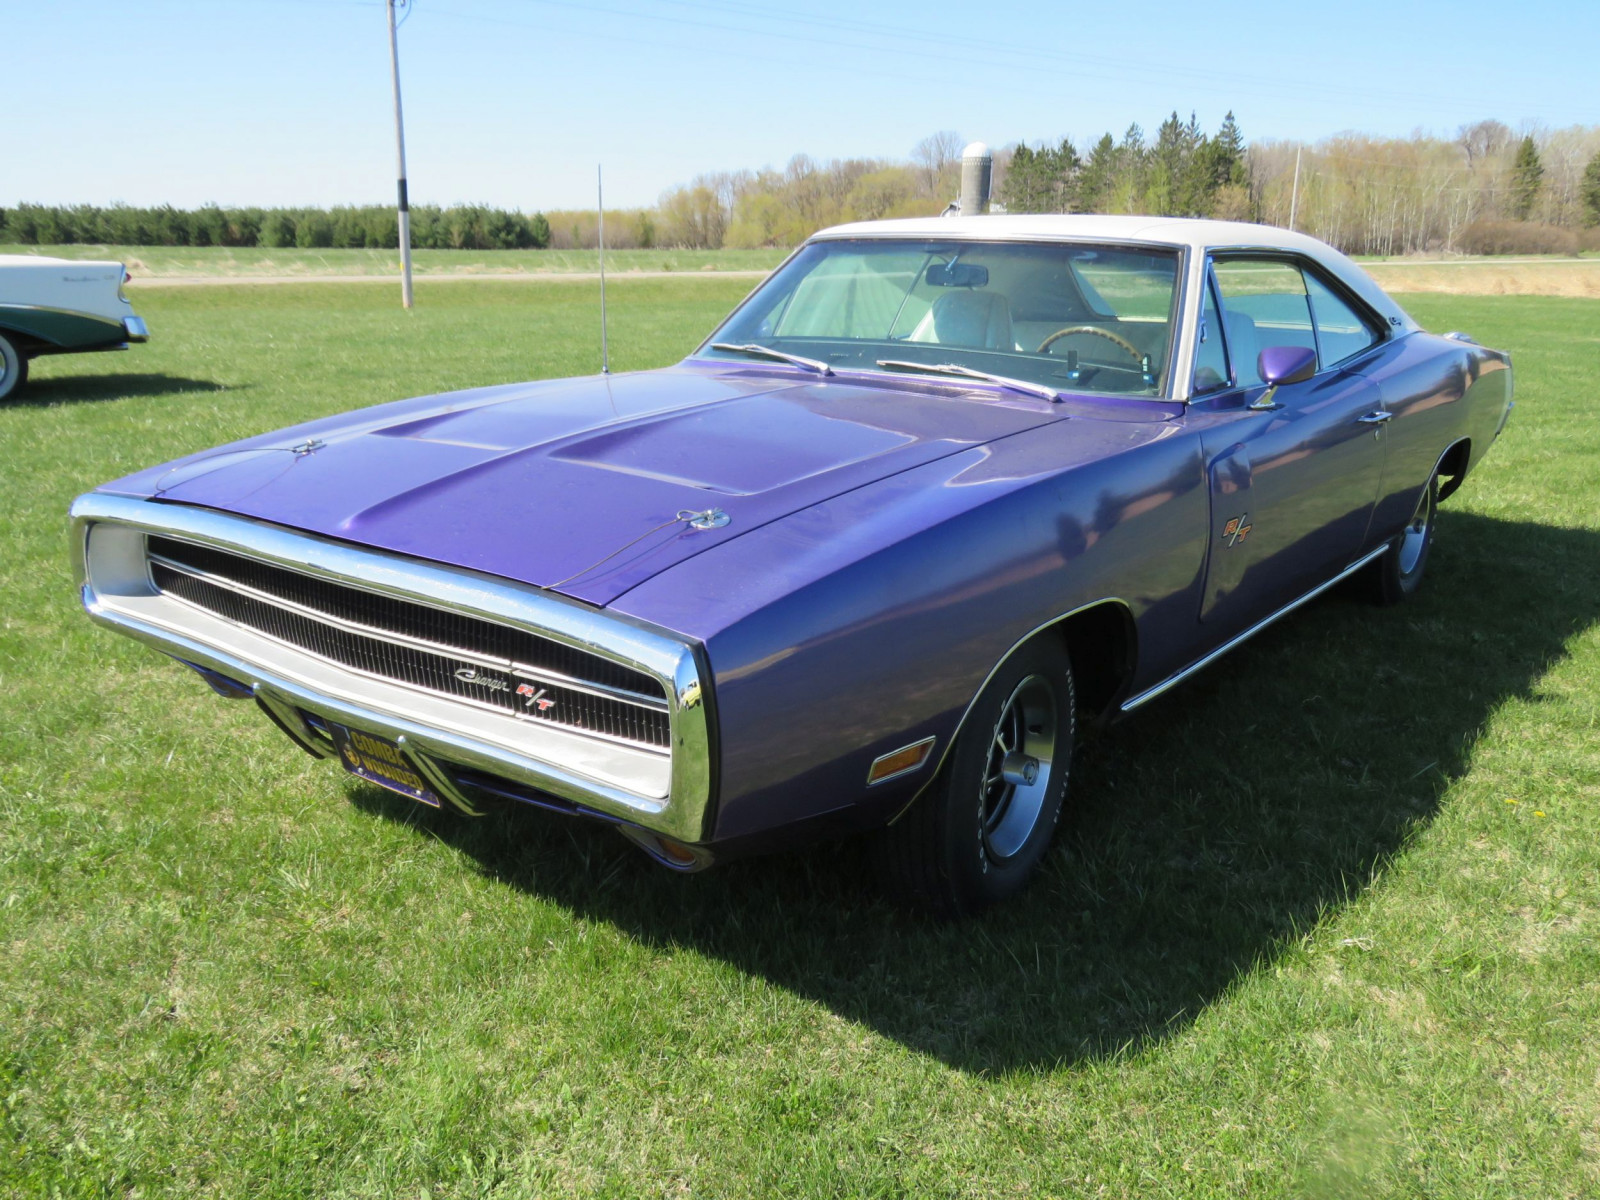 1970 Dodge Charger RT Amazing Survivor - Image 3